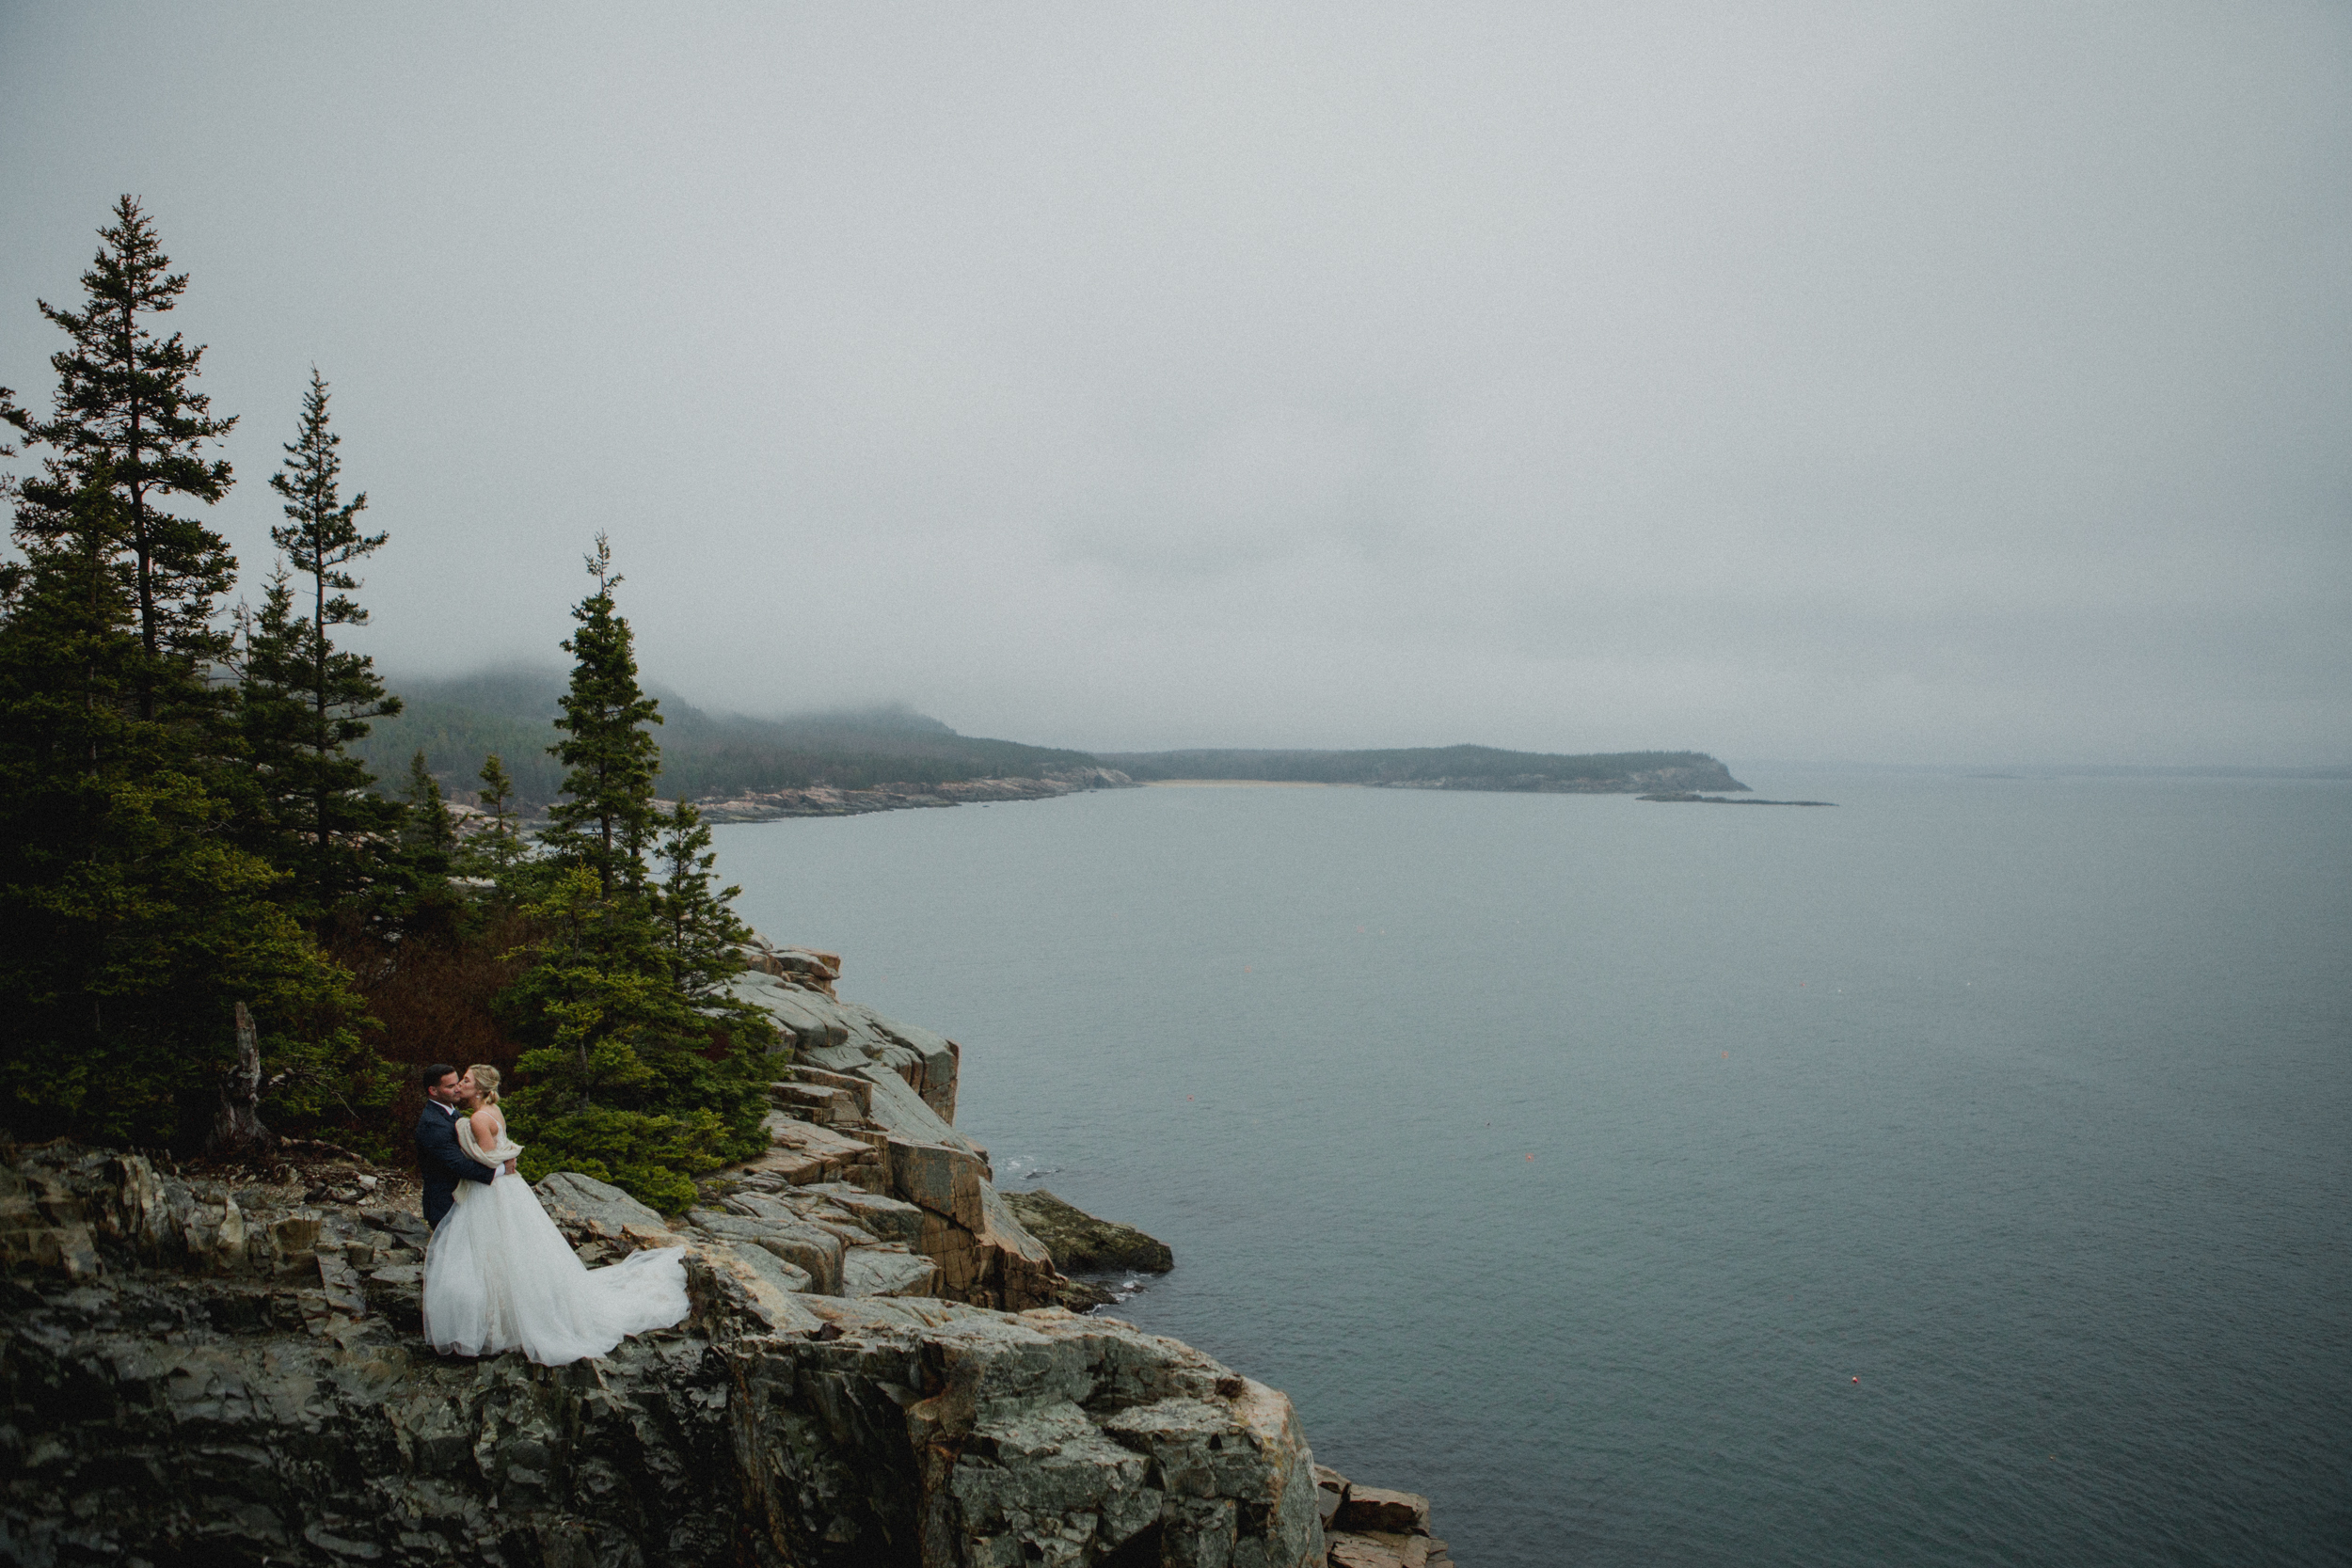 Acadia-National-Park-Wedding-43.jpg